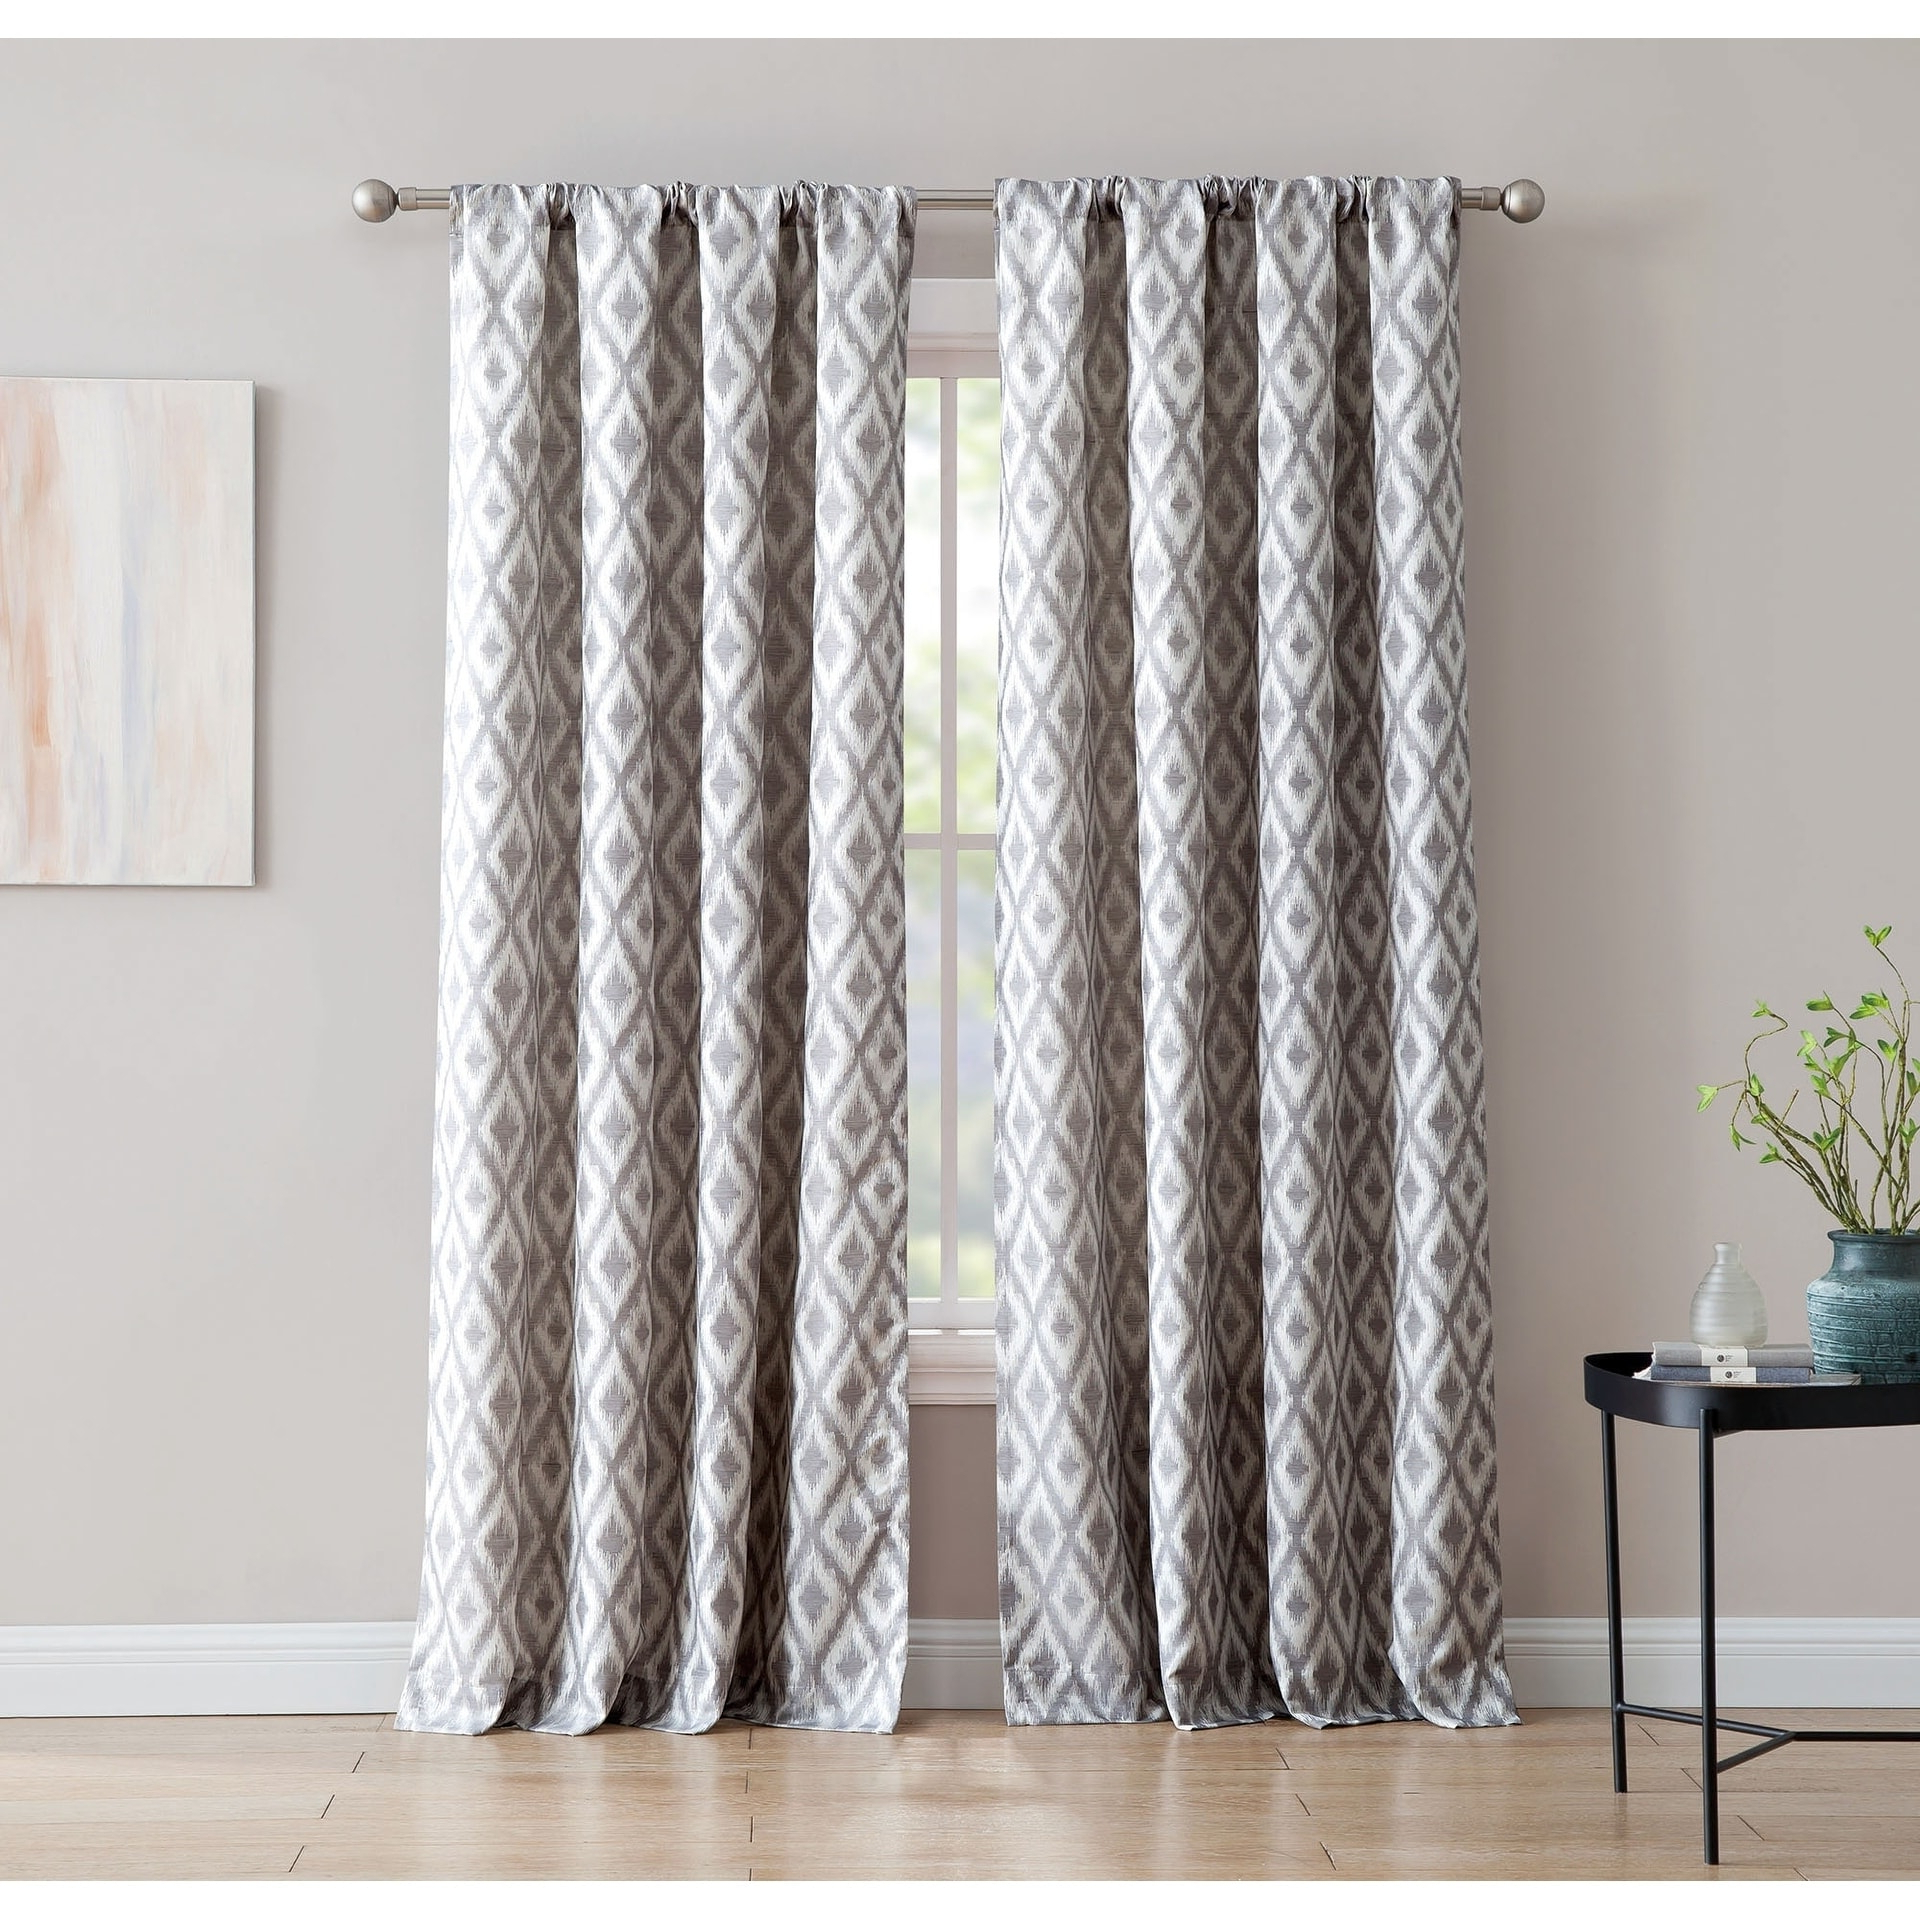 Newest Sunsmart Dahlia Paisley Printed Total Blackout Single Window Curtain Panels For Kalahari Jacquard 84 Inch Window Curtain With Rod Pocket (View 18 of 20)